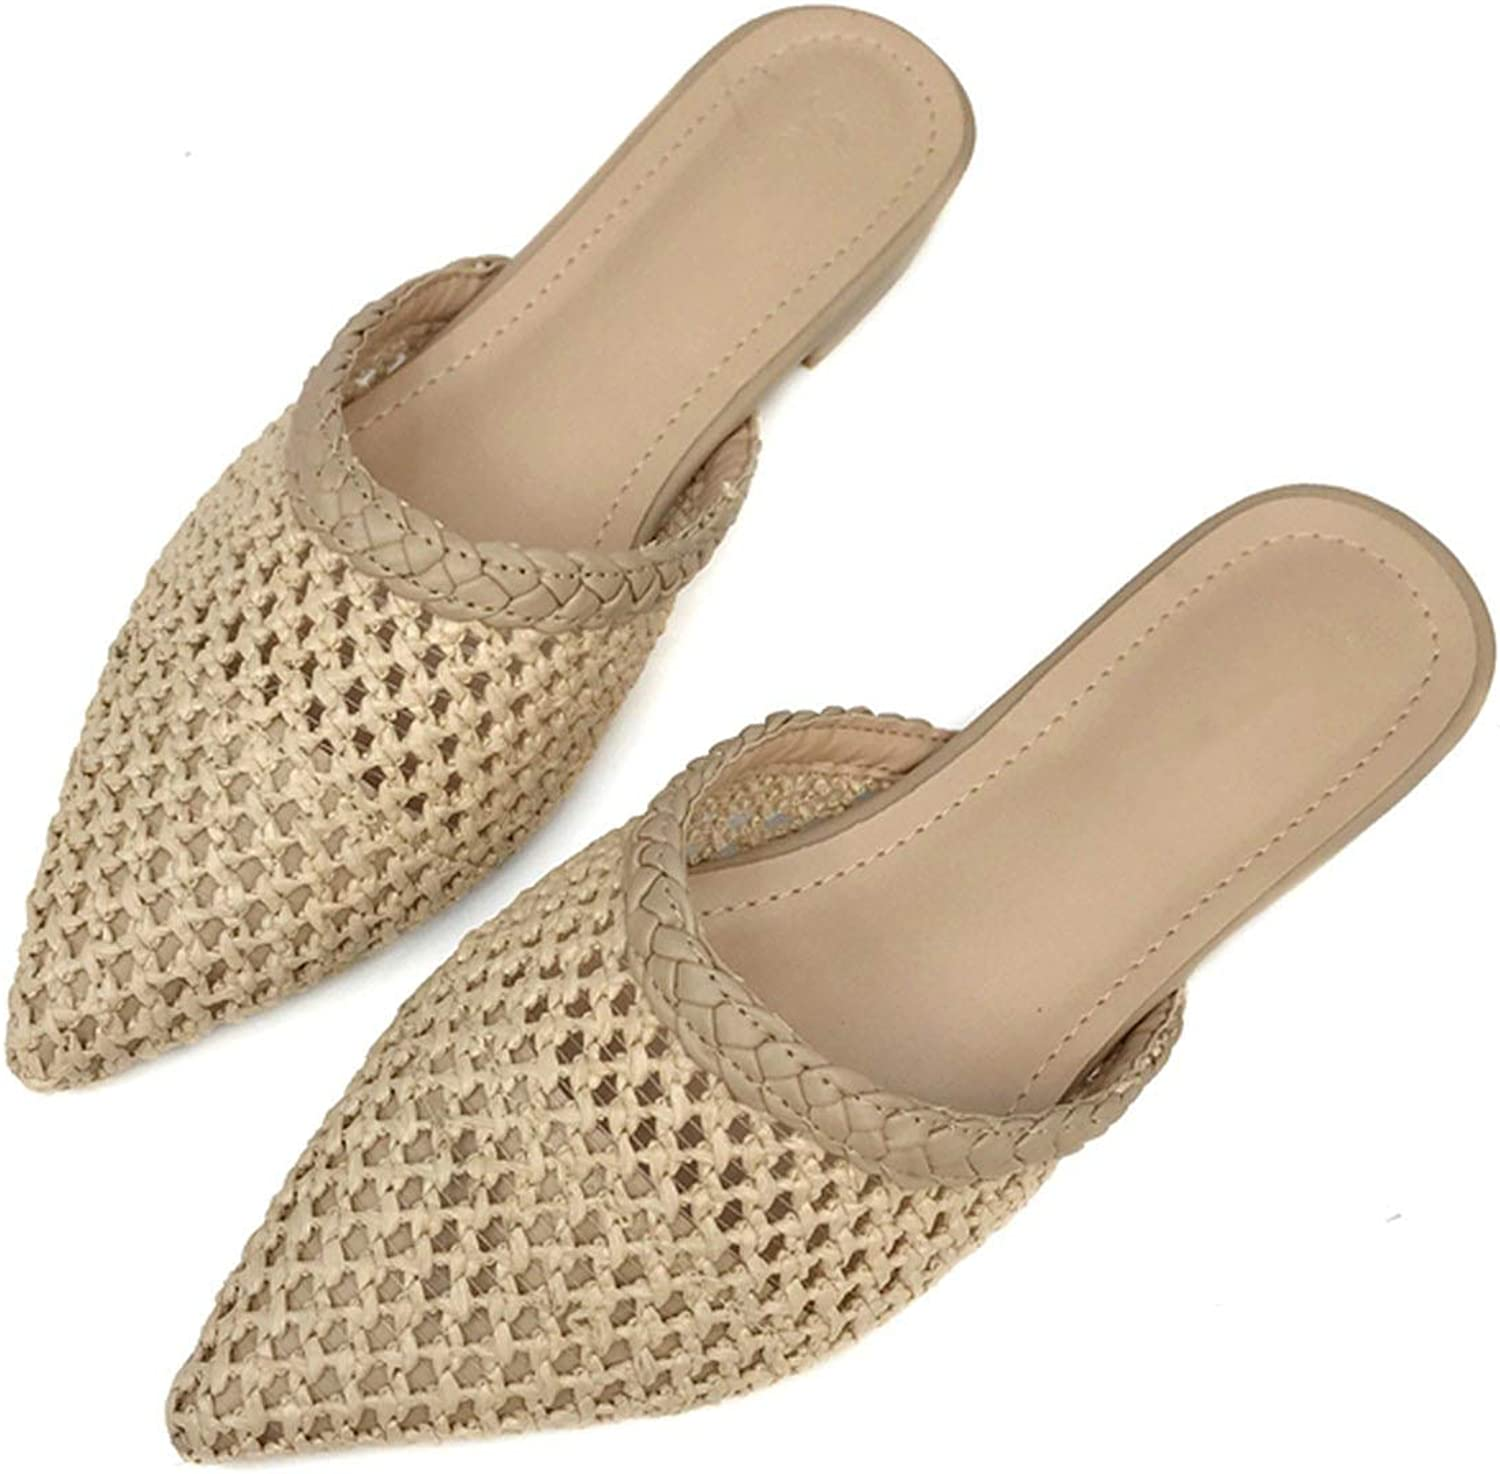 Hollow Weave Mules Women Slippers Summer Pointed Toe Flat Heel Slides Ladies Sandals